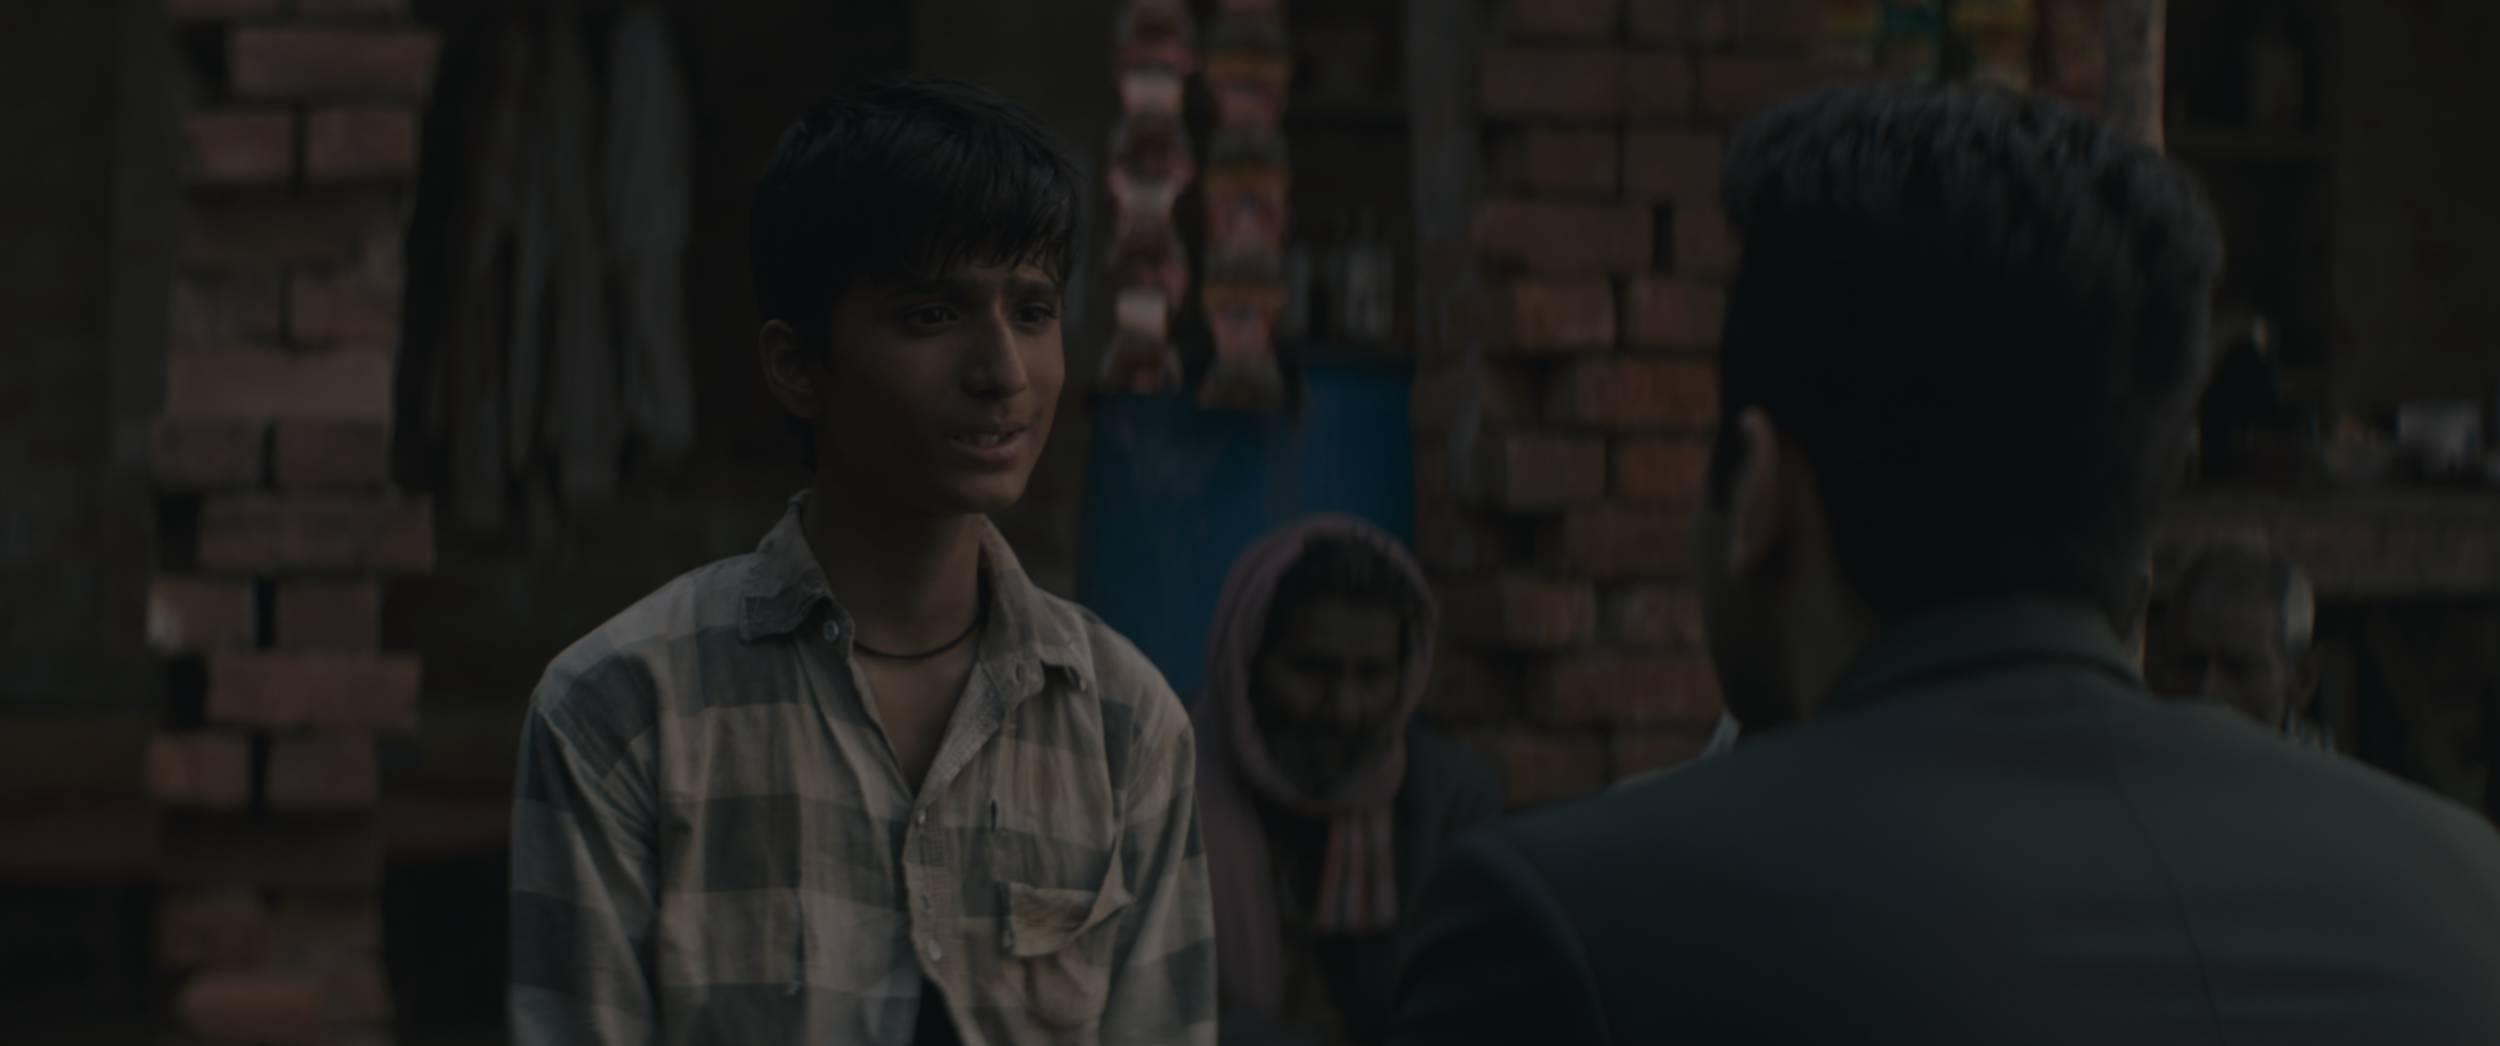 Questioning Dalit Boy 004.png